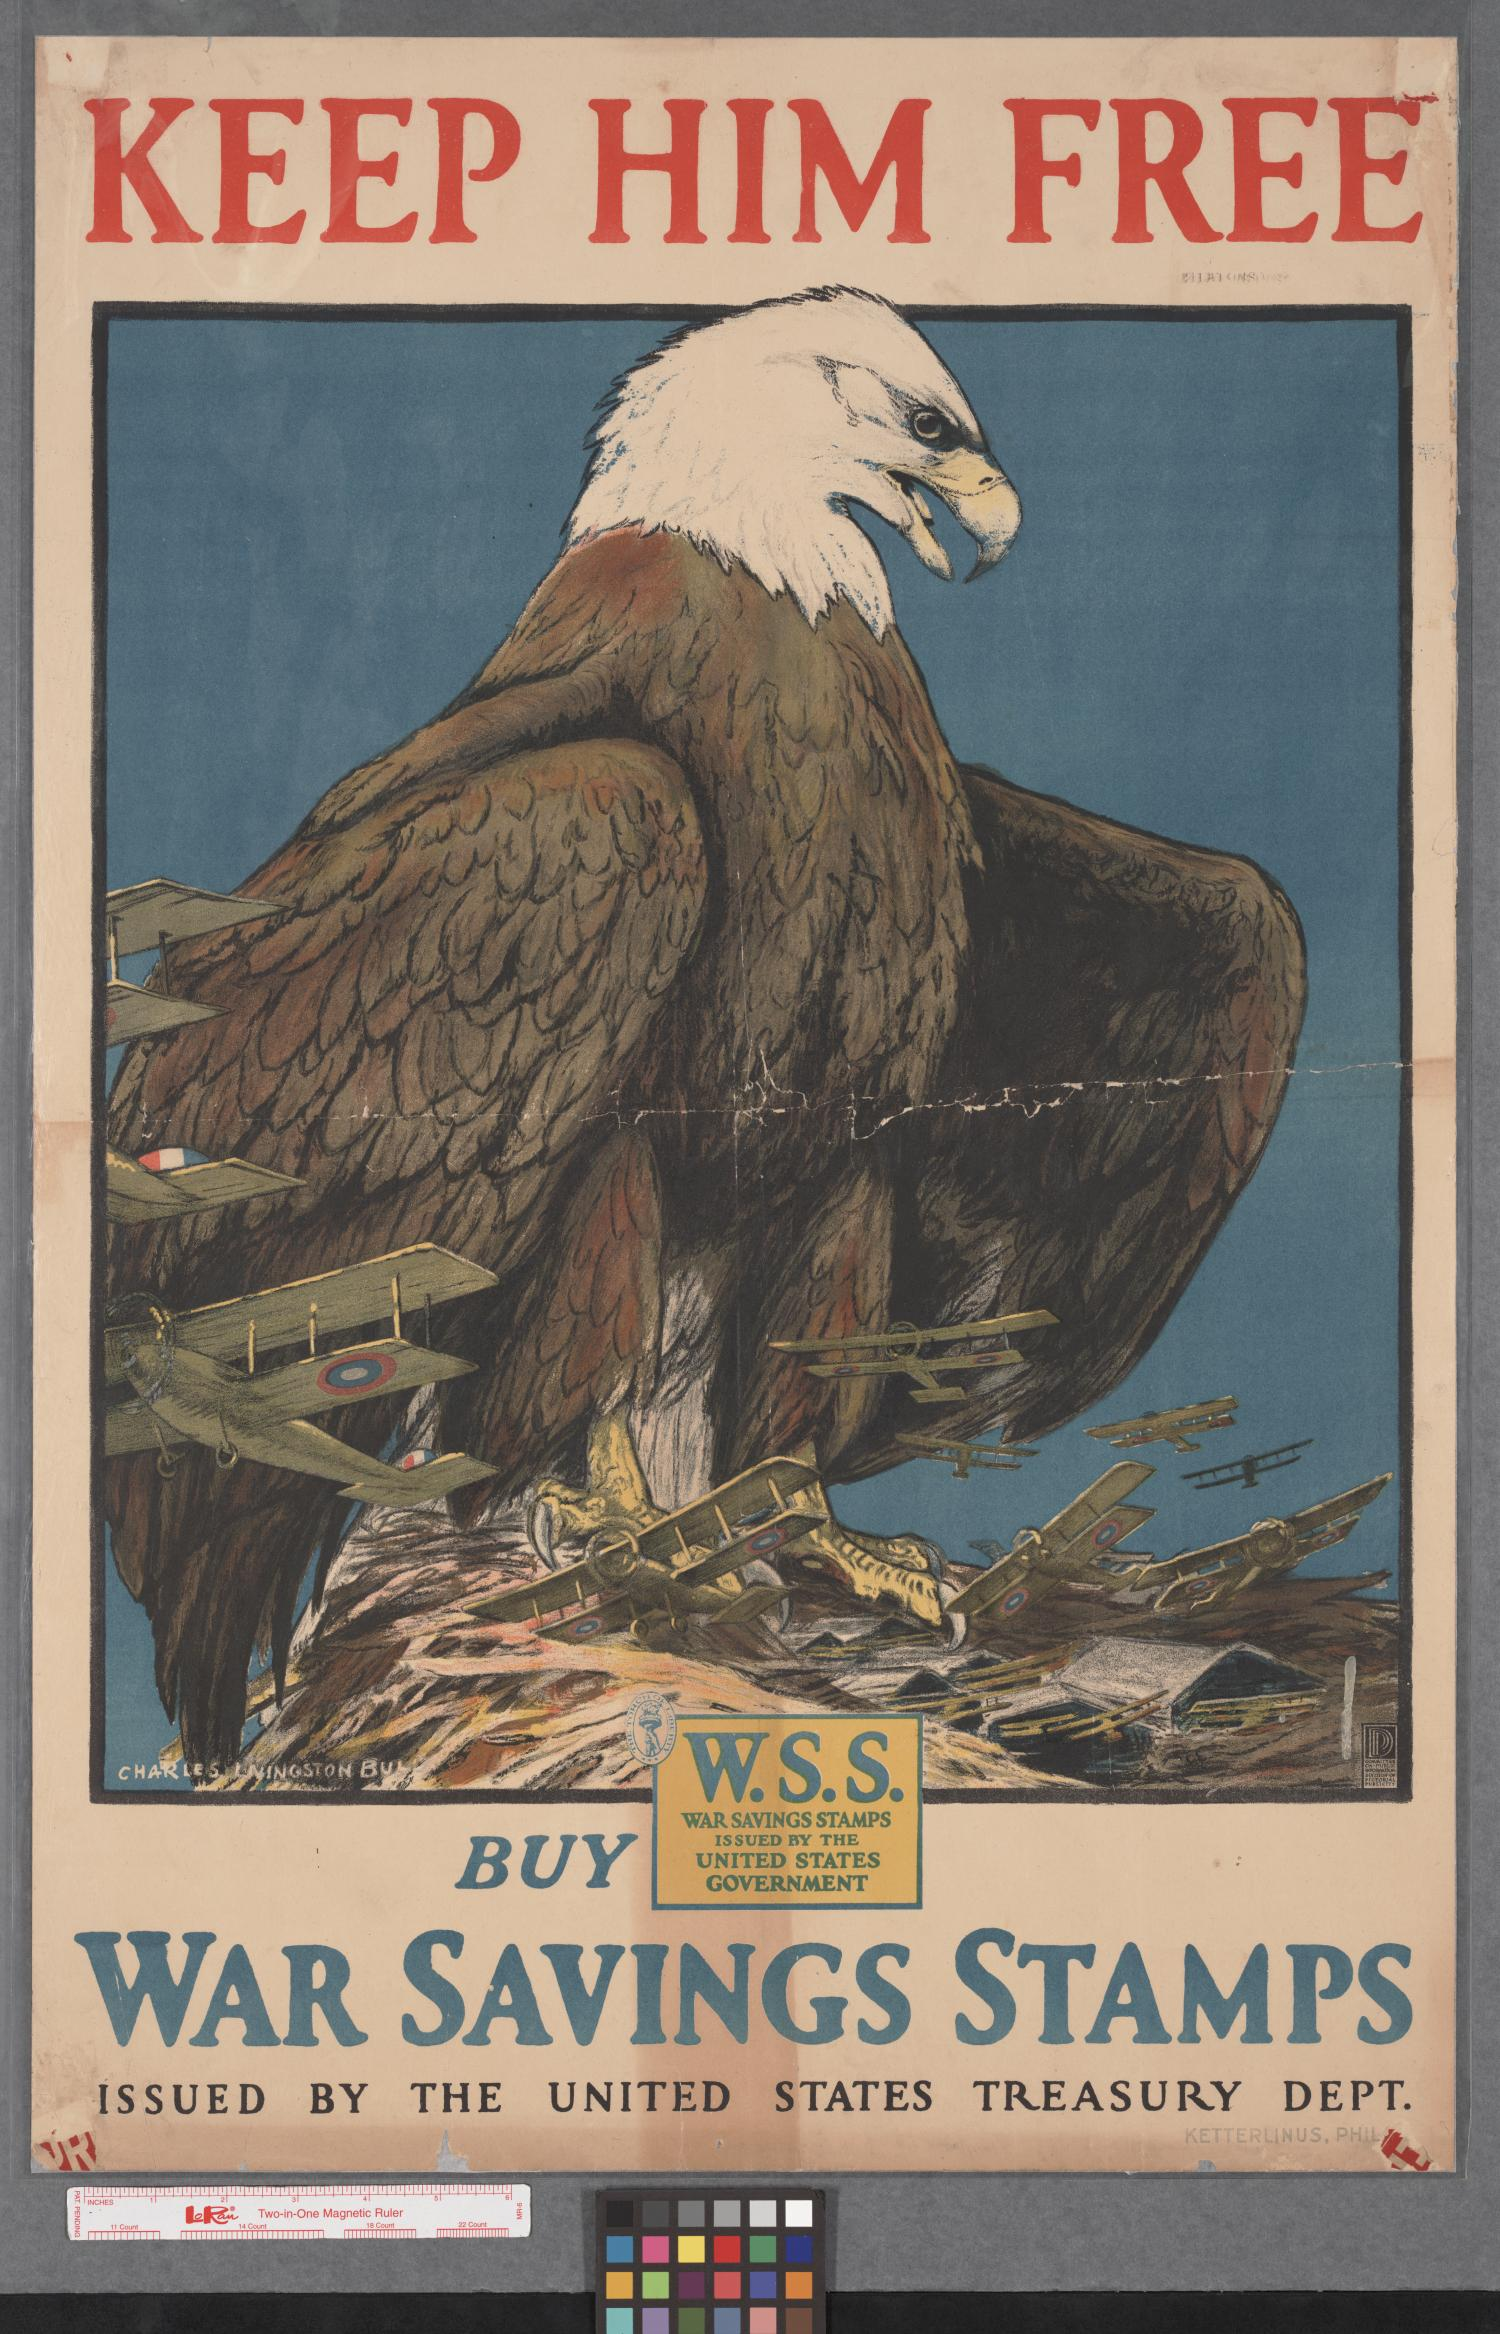 Keep him free, buy war savings stamps issued by the United States Treasury Dept.                                                                                                      [Sequence #]: 1 of 1